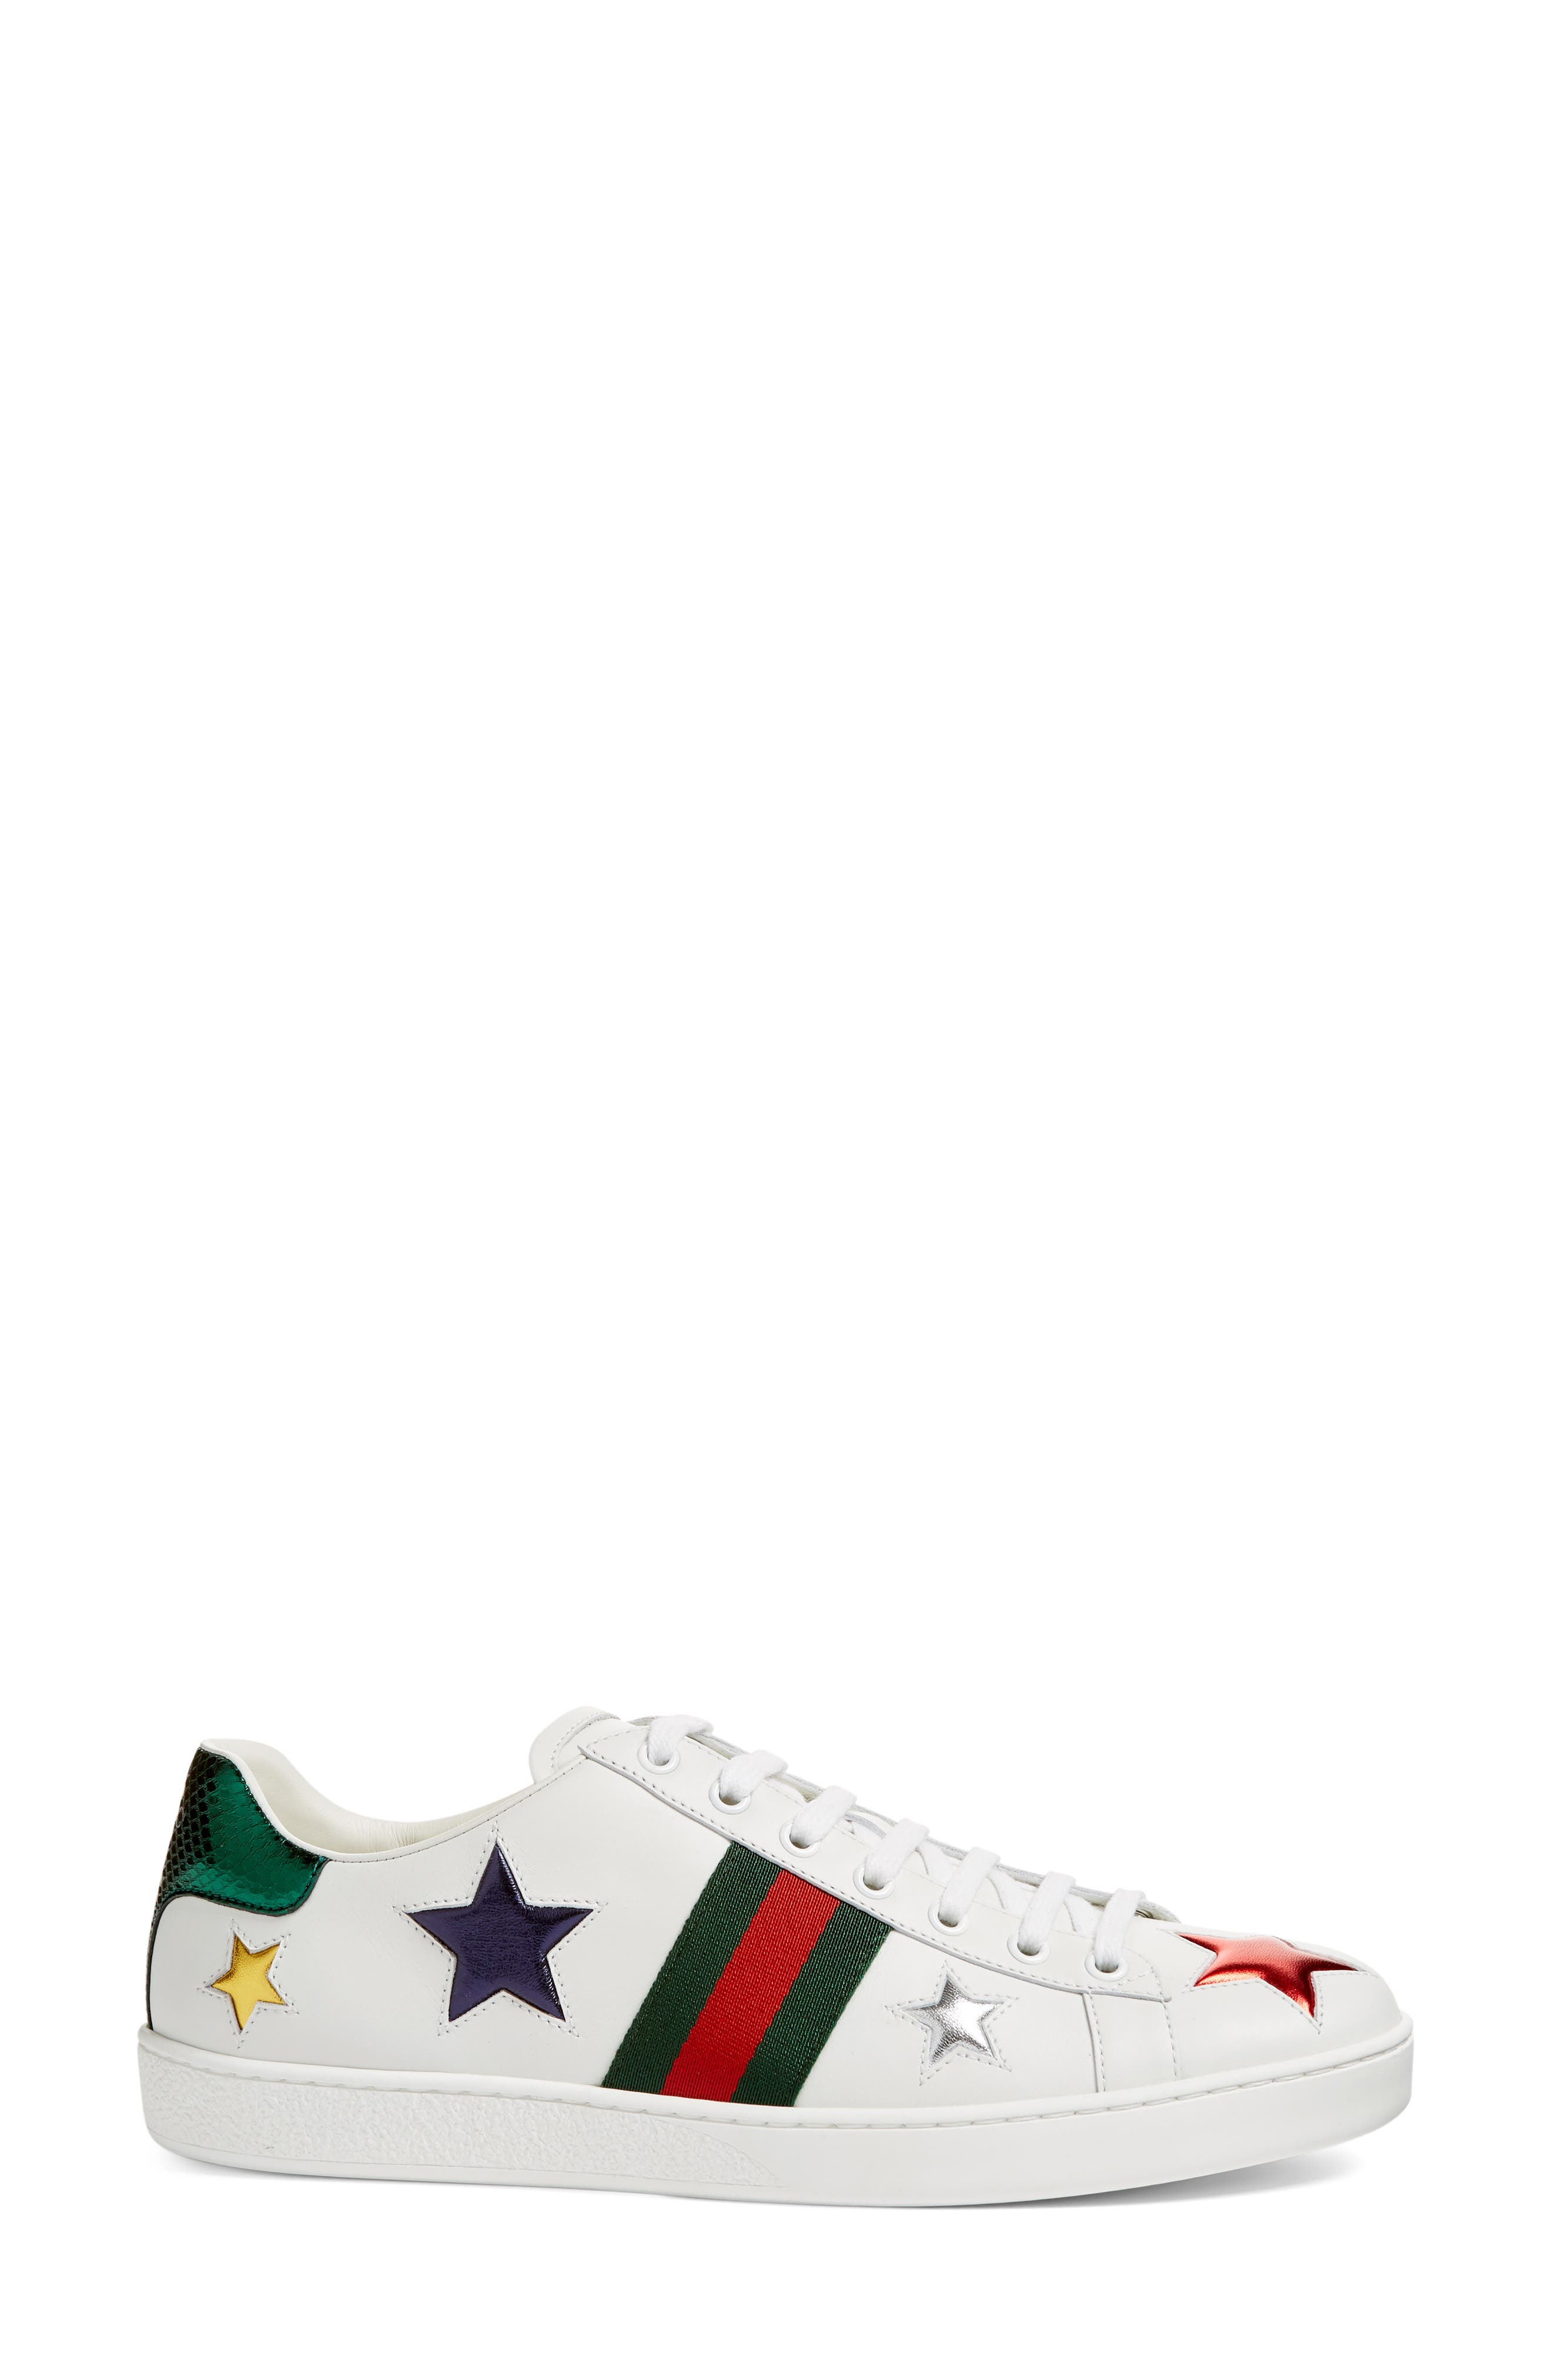 GUCCI, New Ace Star Sneaker, Alternate thumbnail 3, color, WHITE MULTI